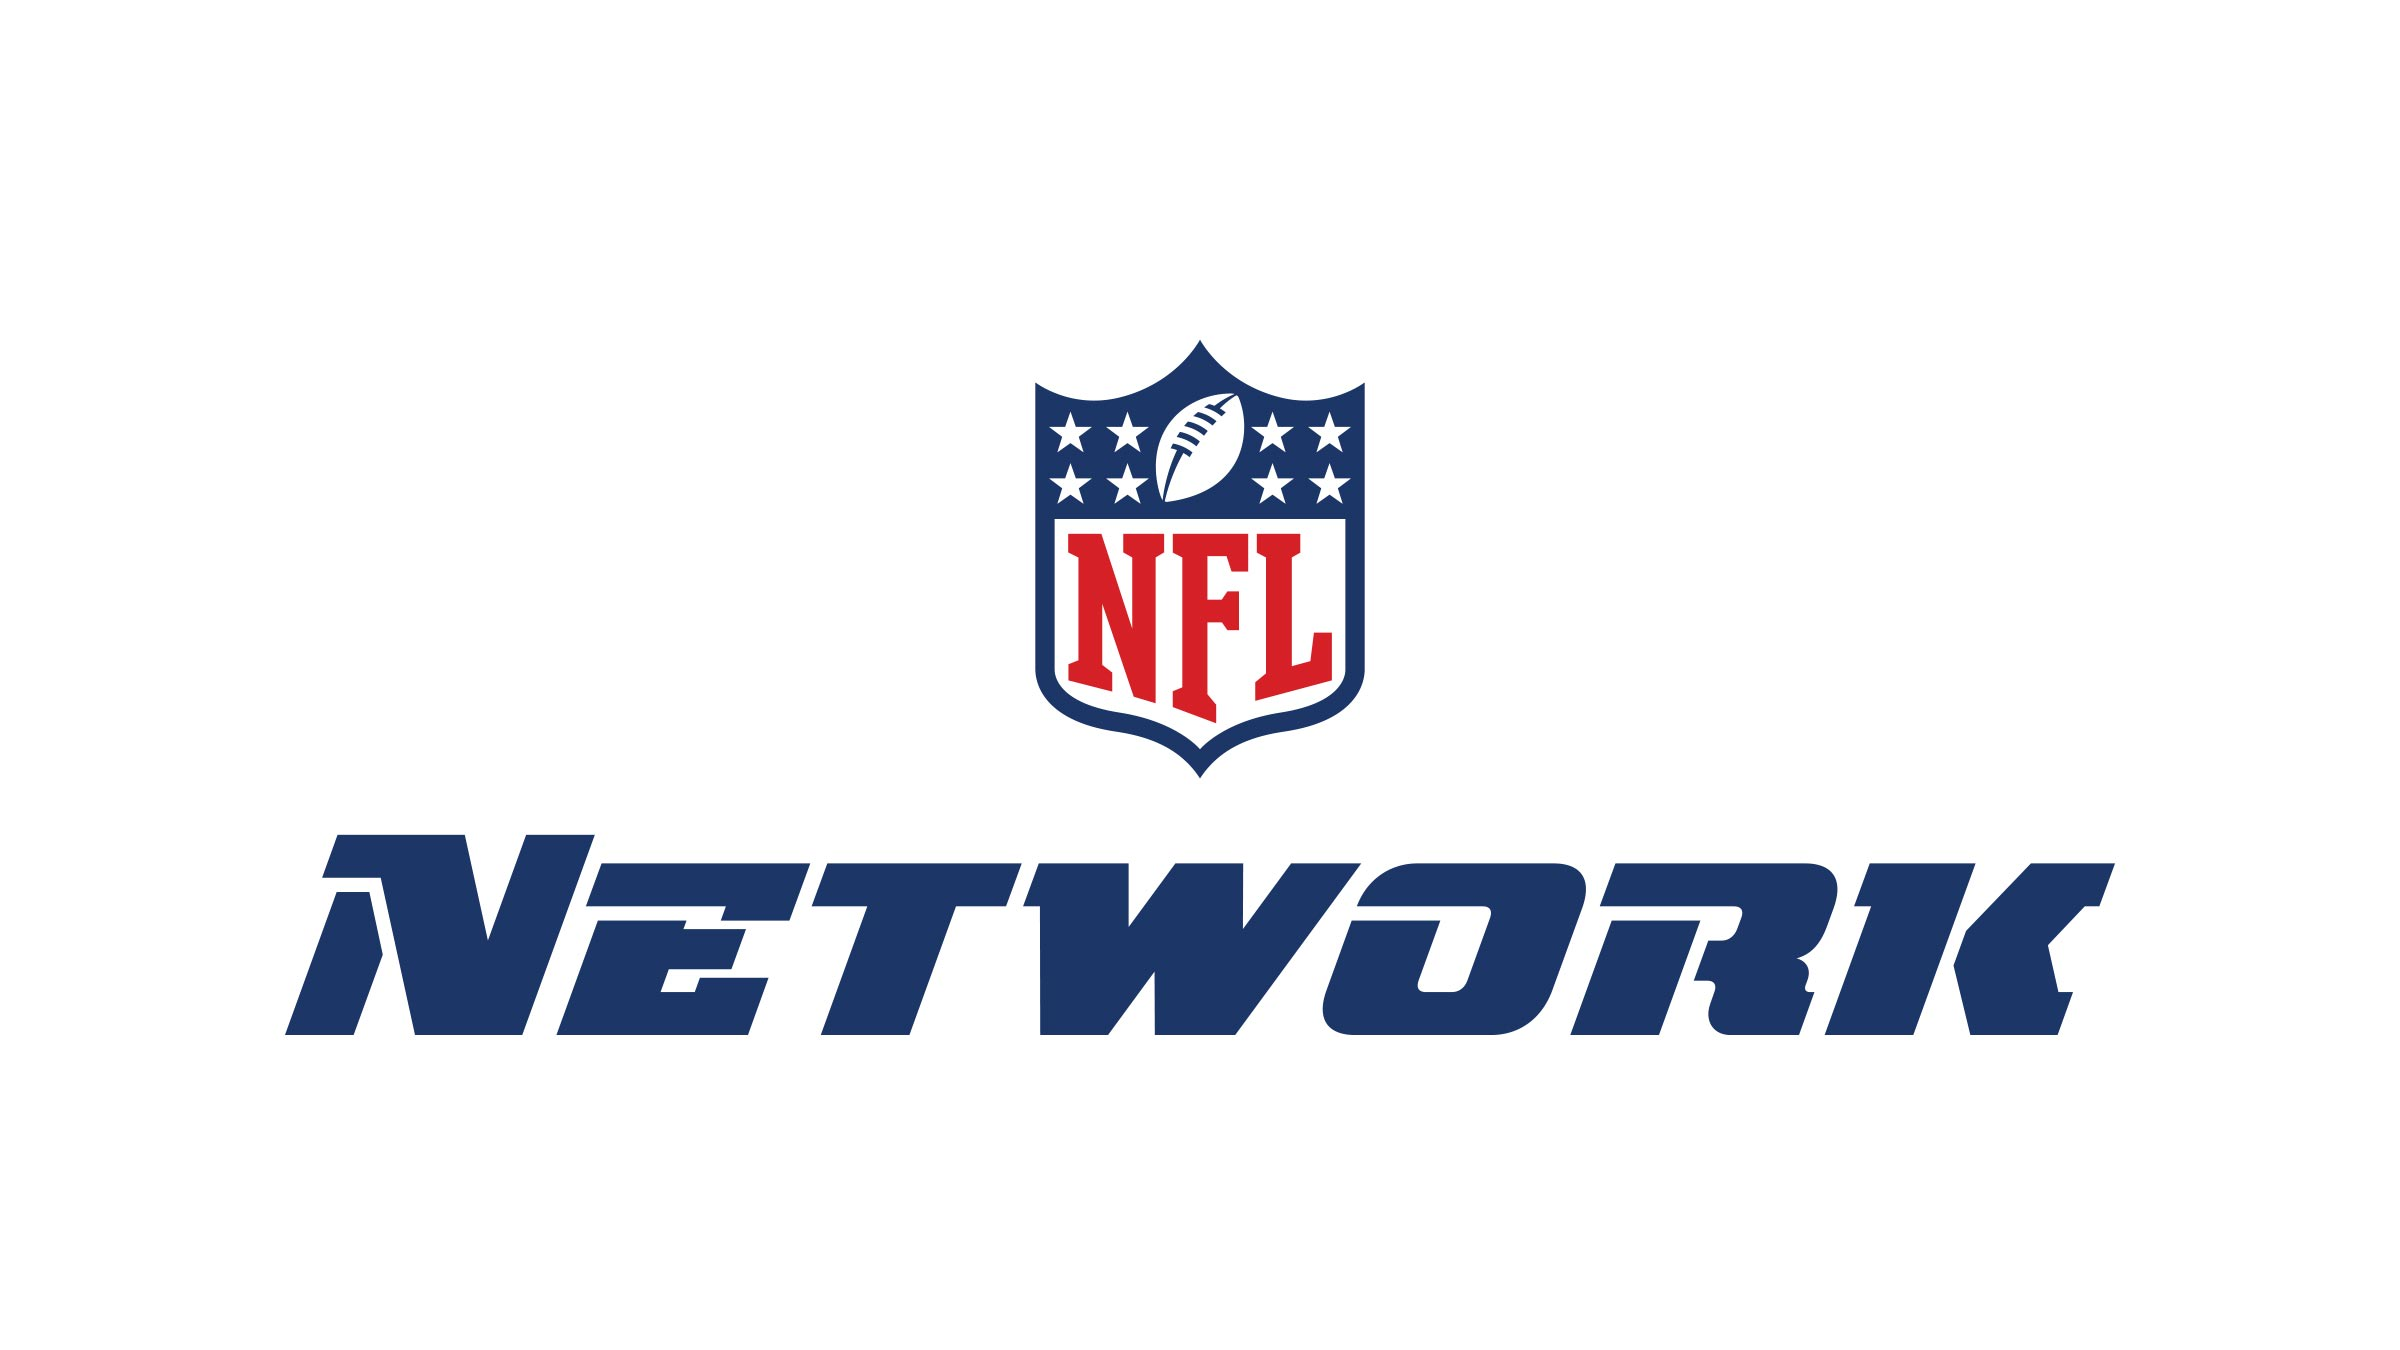 NFL Network